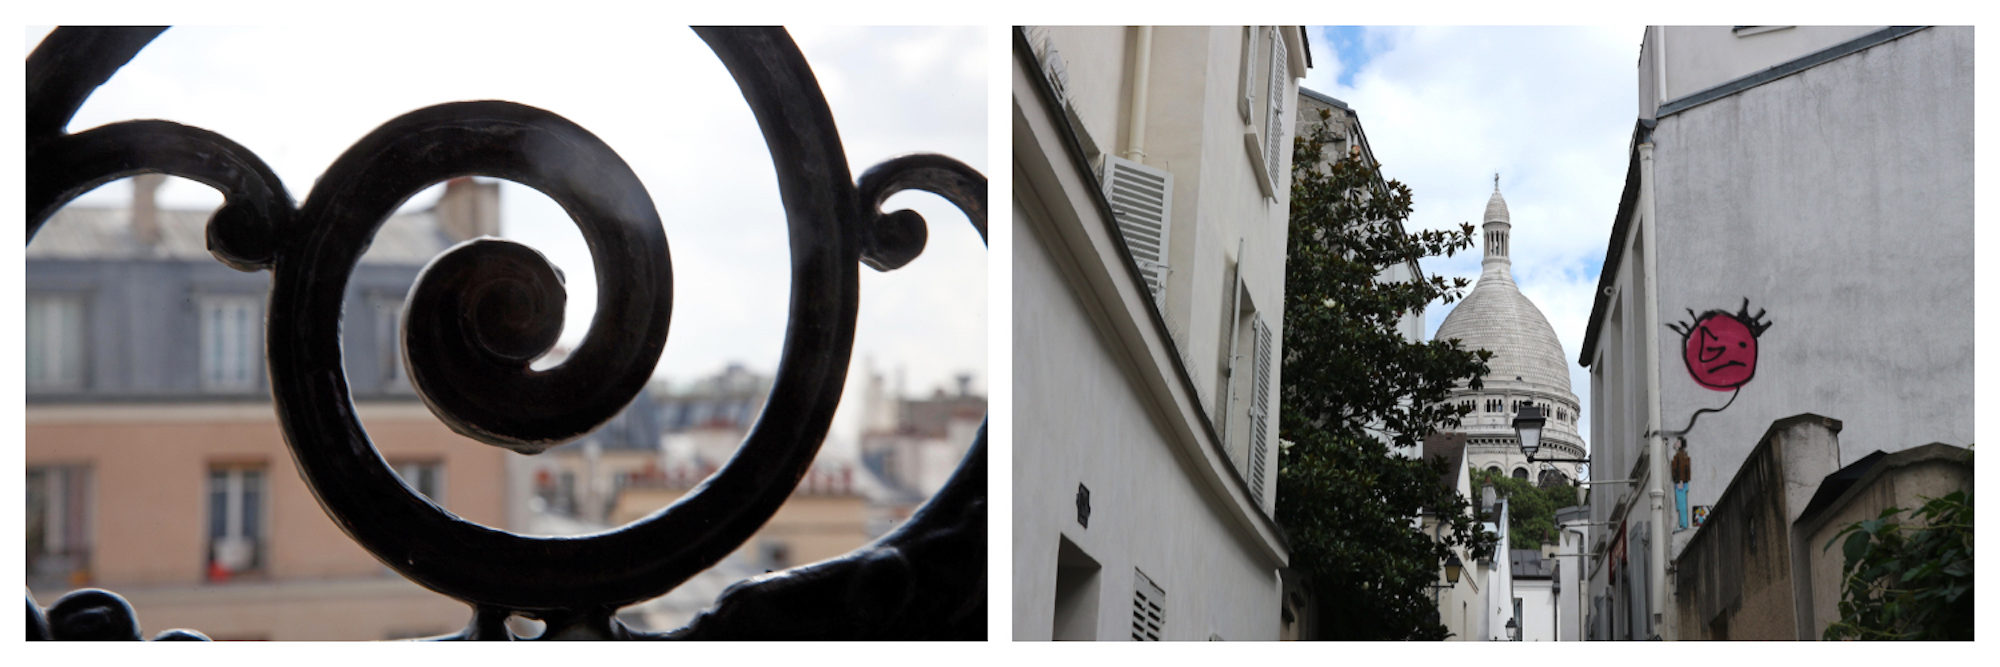 A detail in the wrought iron balcony of a Parisian apartment (left). A view of the Sacré Coeur Basilica at the end of a narrow lane, with a pink balloon painted on the right-hand wall (right).